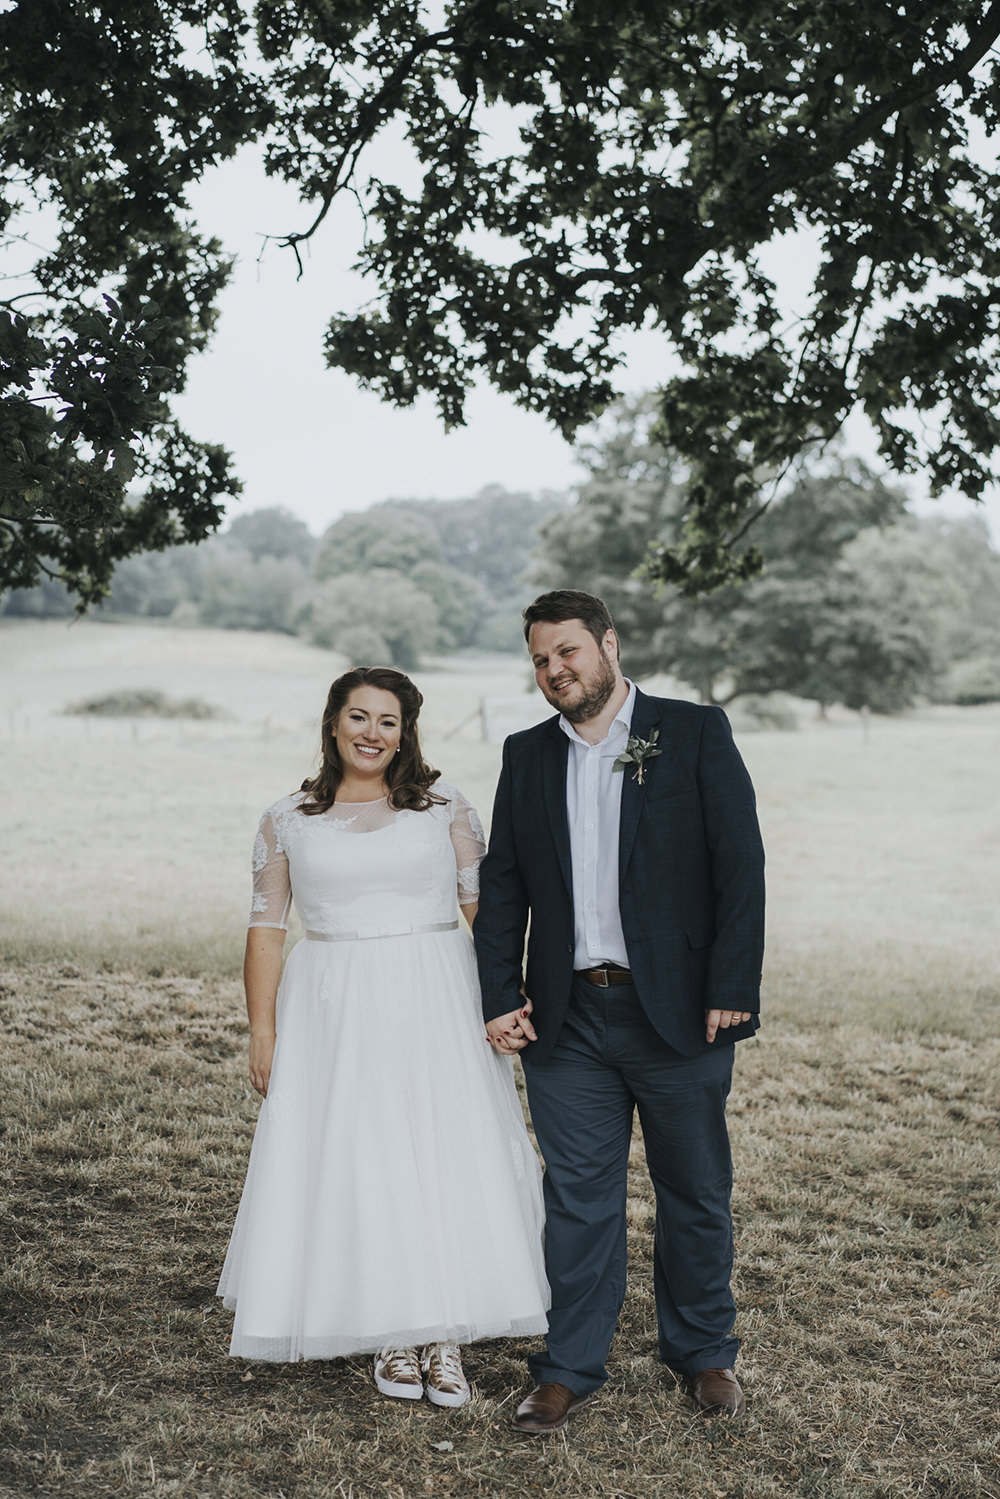 Bride Bridal Dress Gown Overlay Belt See Through Sleeves Open Shirt Groom Celestial Cow Shed Wedding Tora Baker Photography